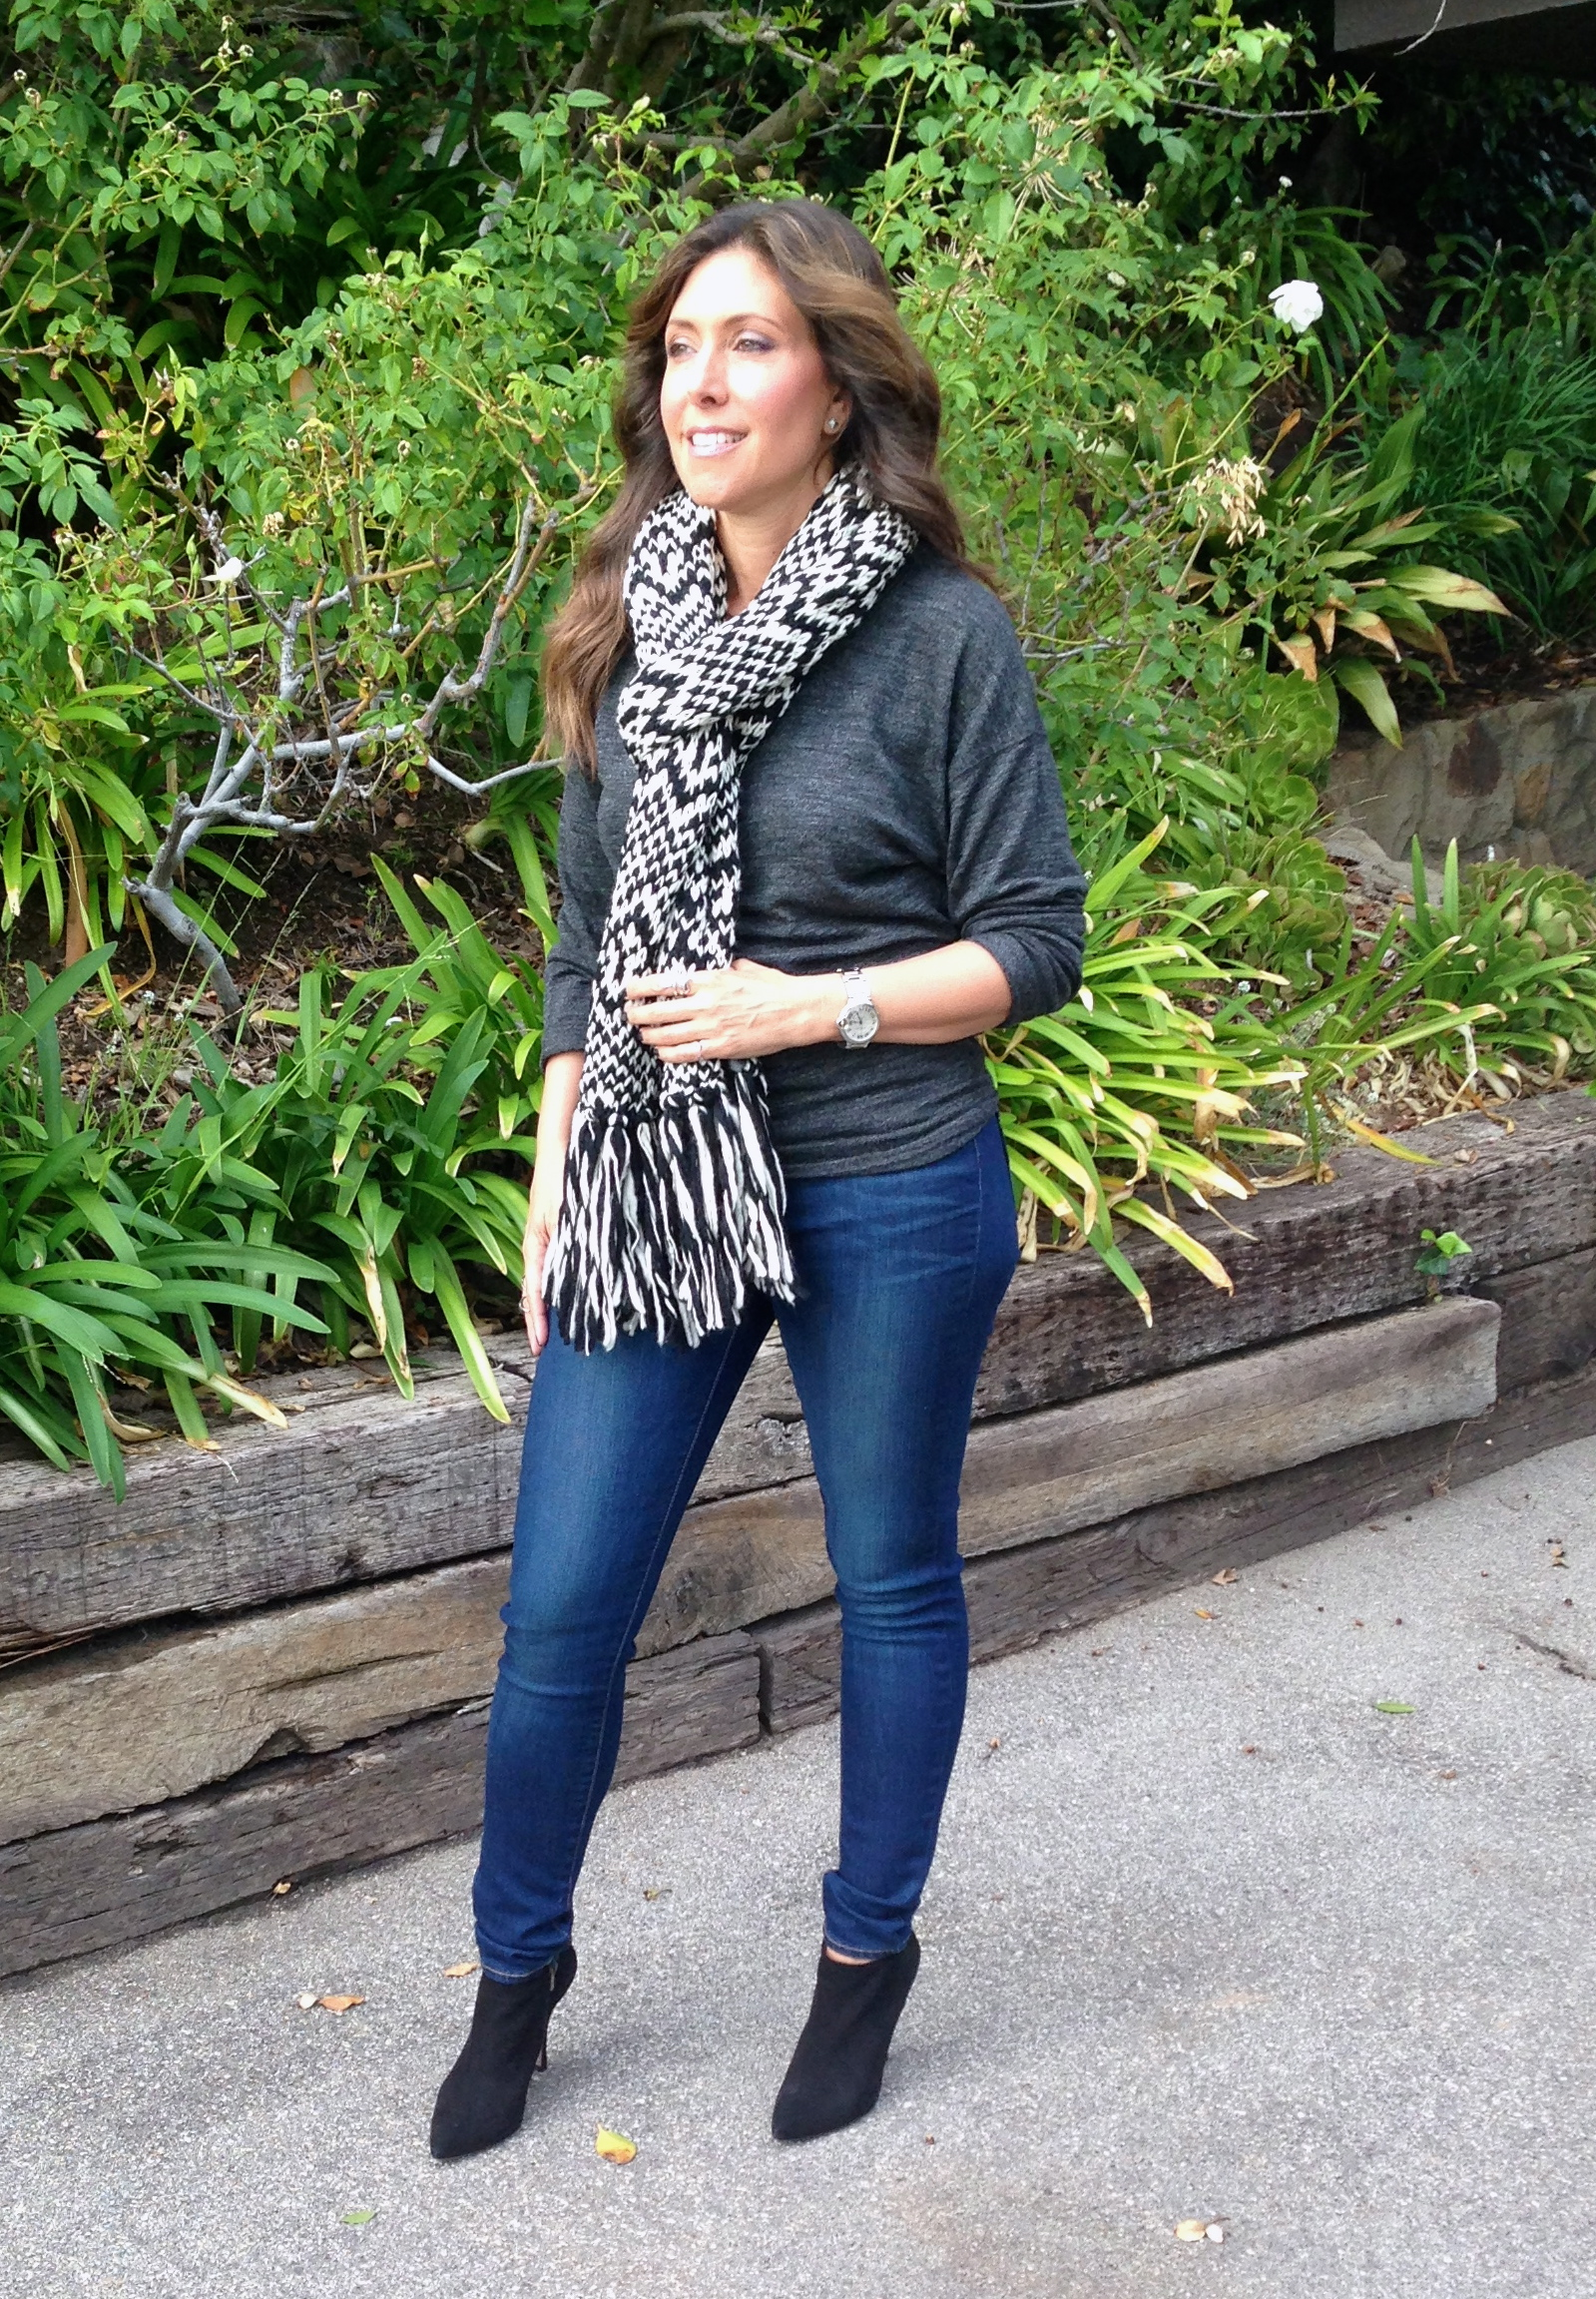 Isabel Marant knit scarf, $49.95. Pura Lopez low cut high heel boots in black, $410.